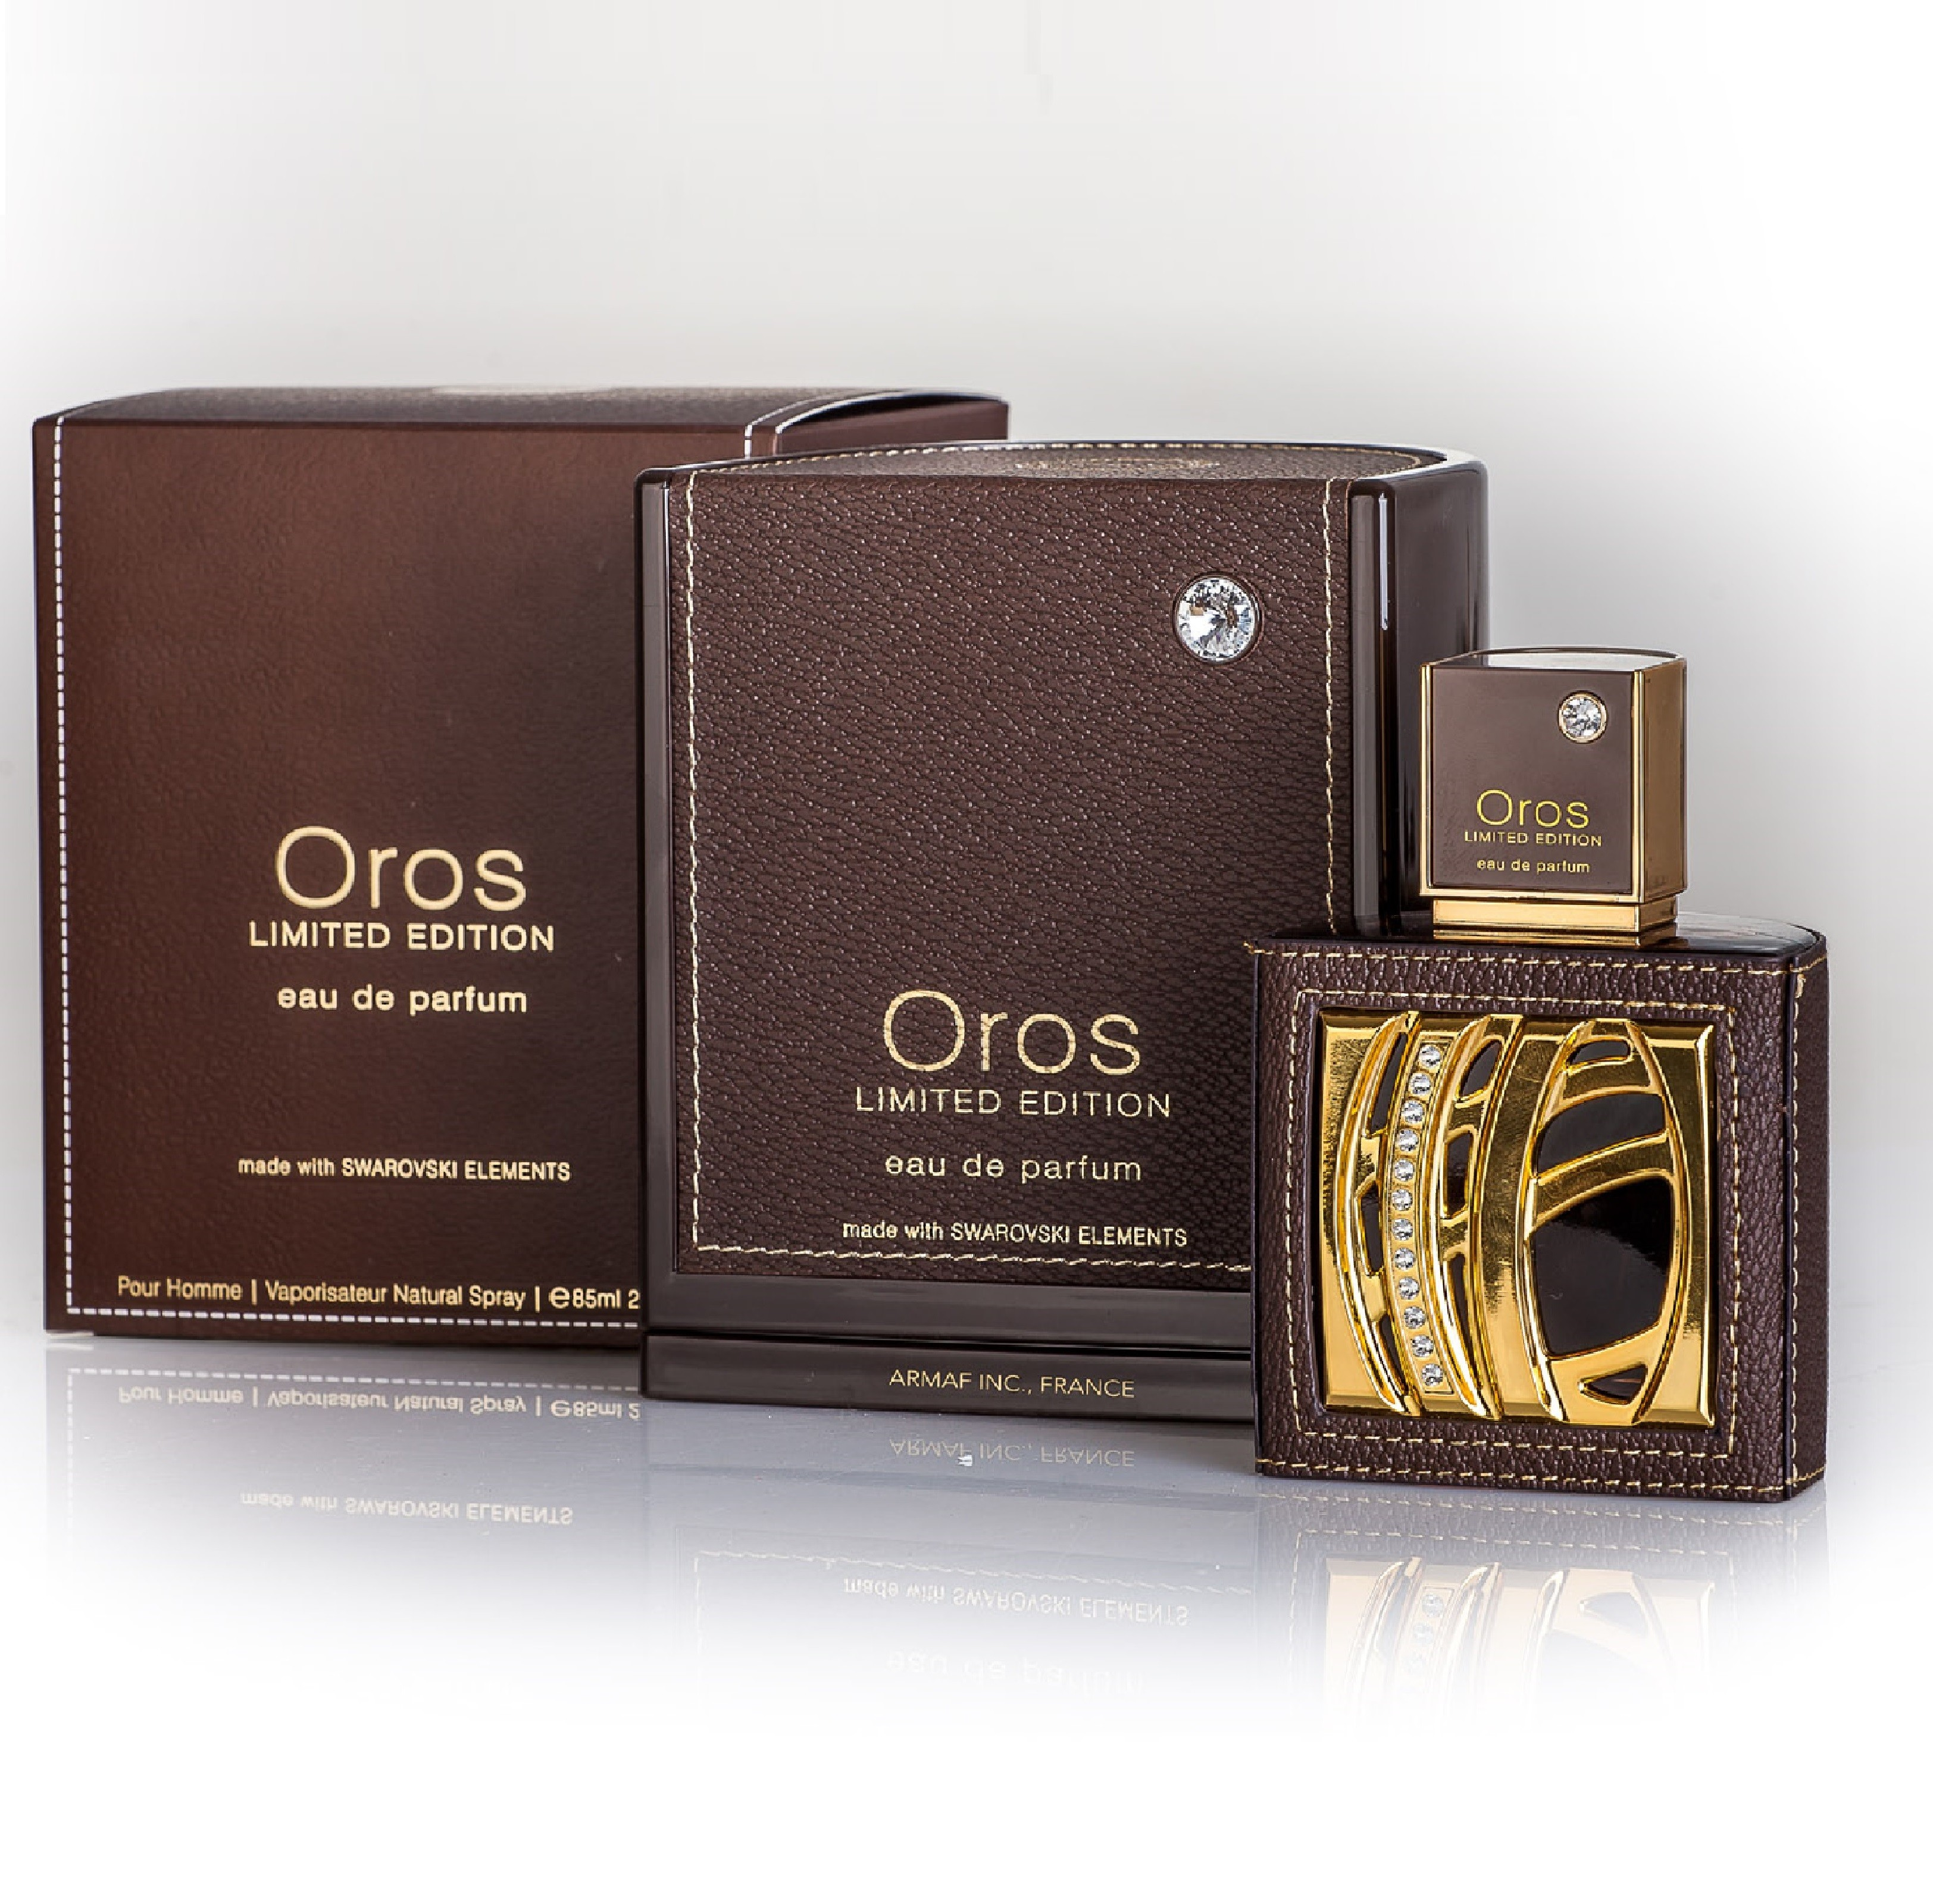 Oros Limited Edition pour homme